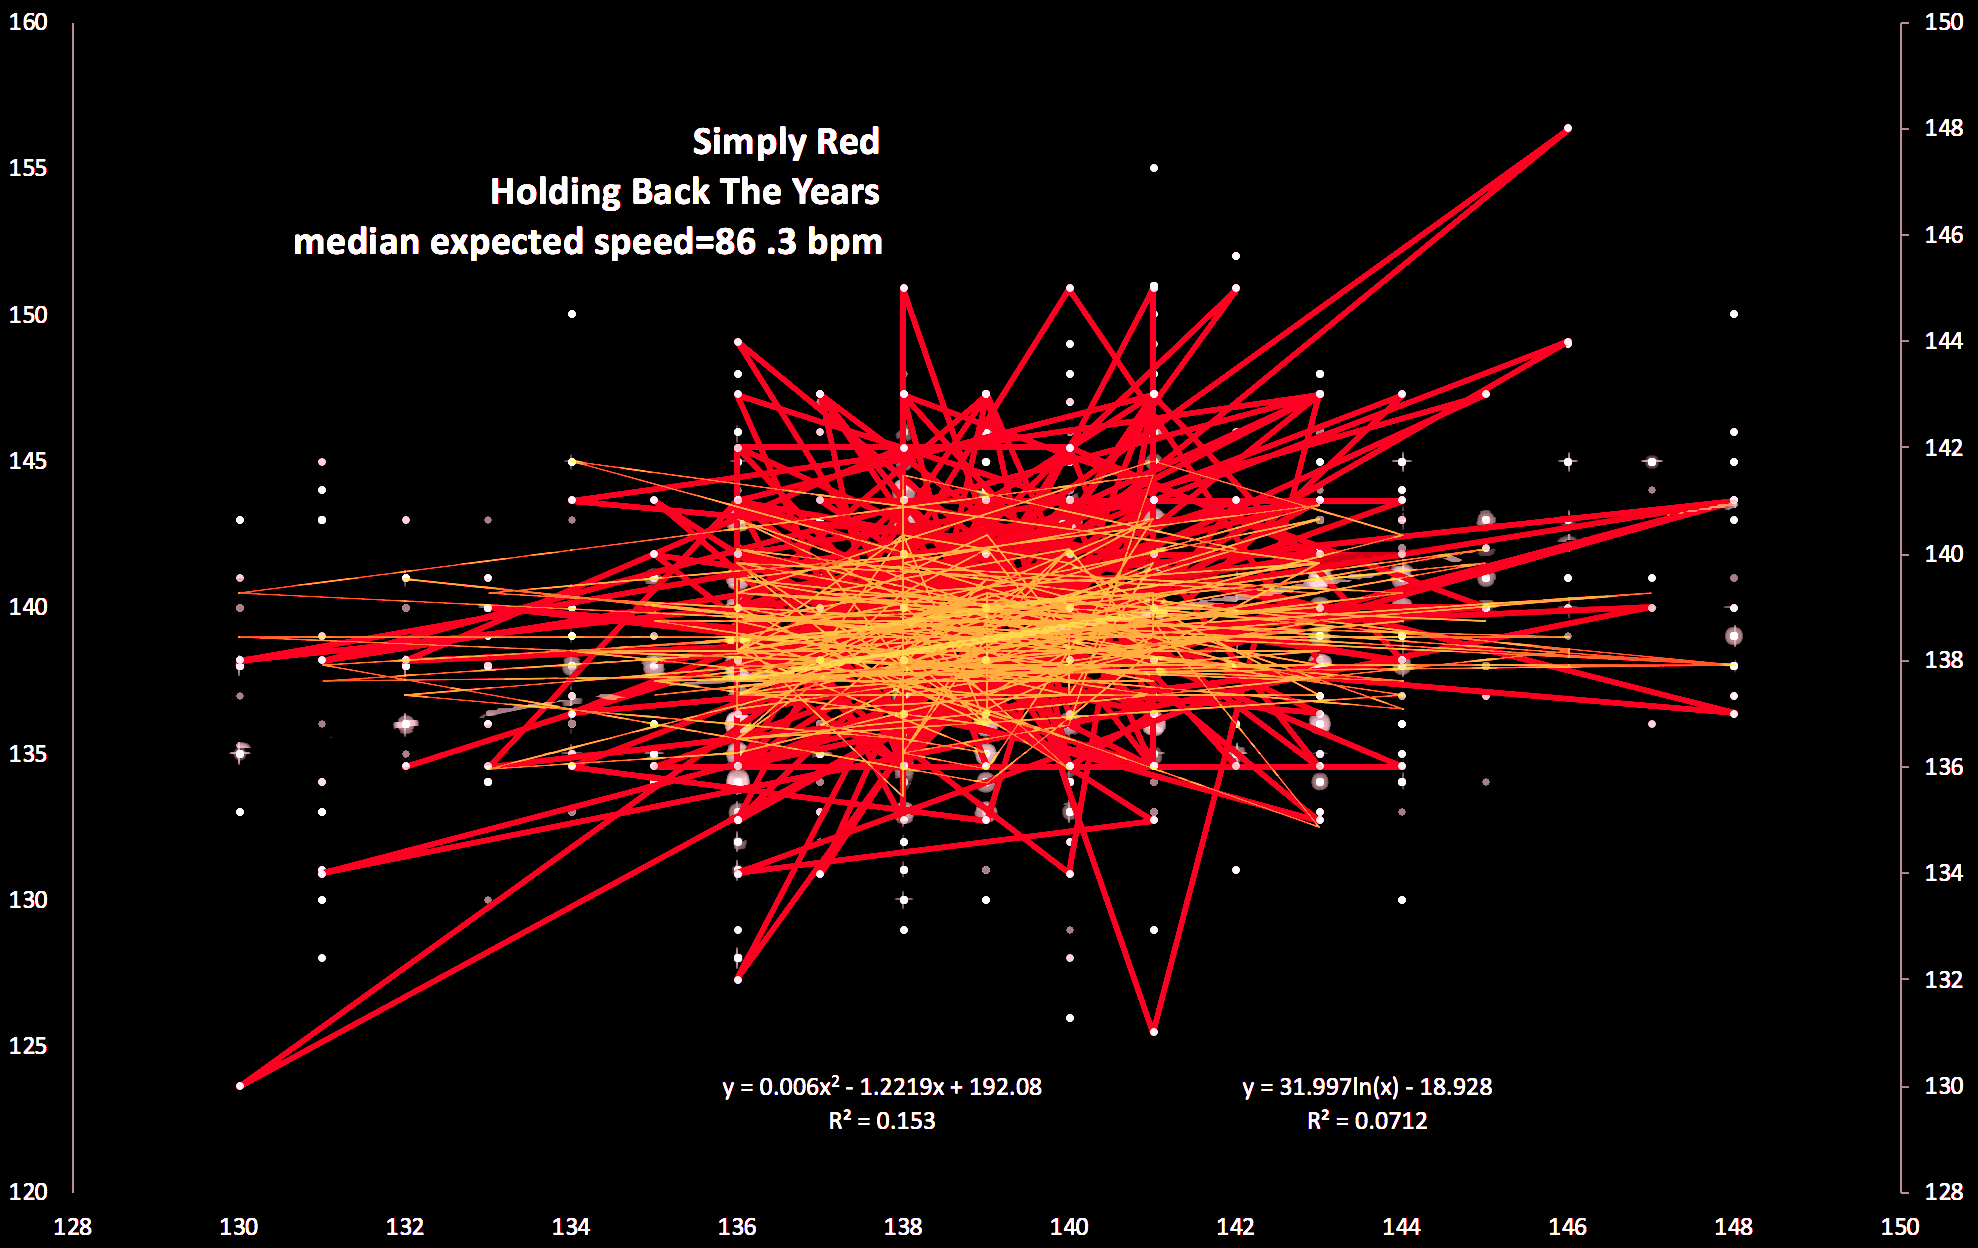 simply-red-holding-back-the-years-matherton-speed-diagram-8888